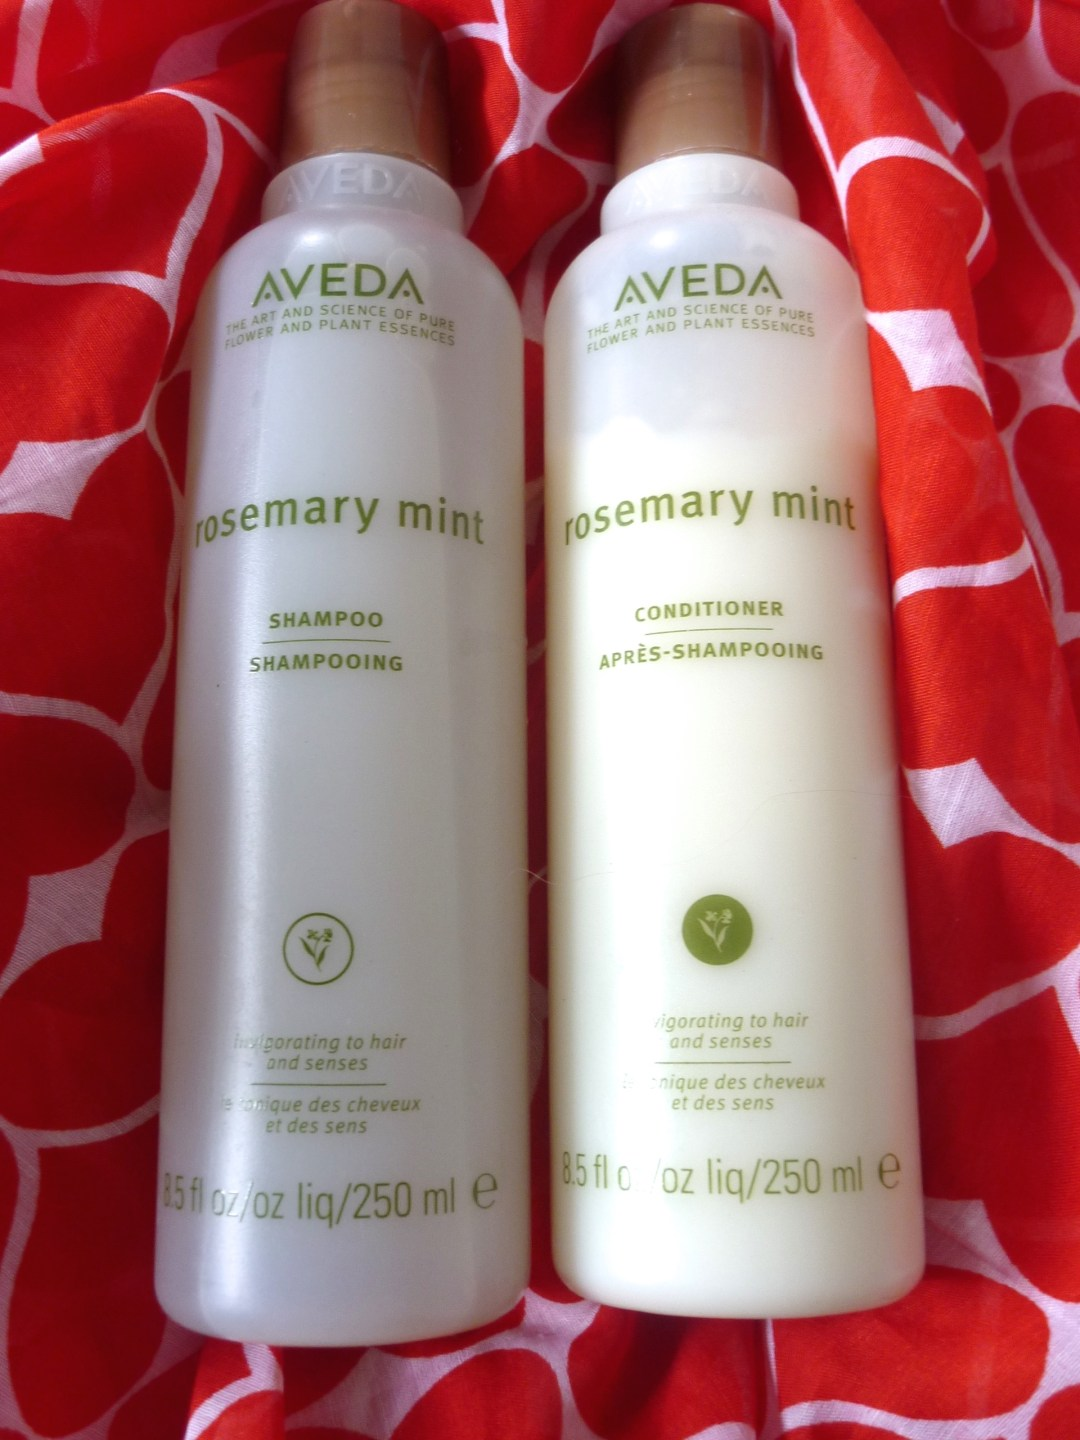 Aveda gamme Rosemary Mint zoom